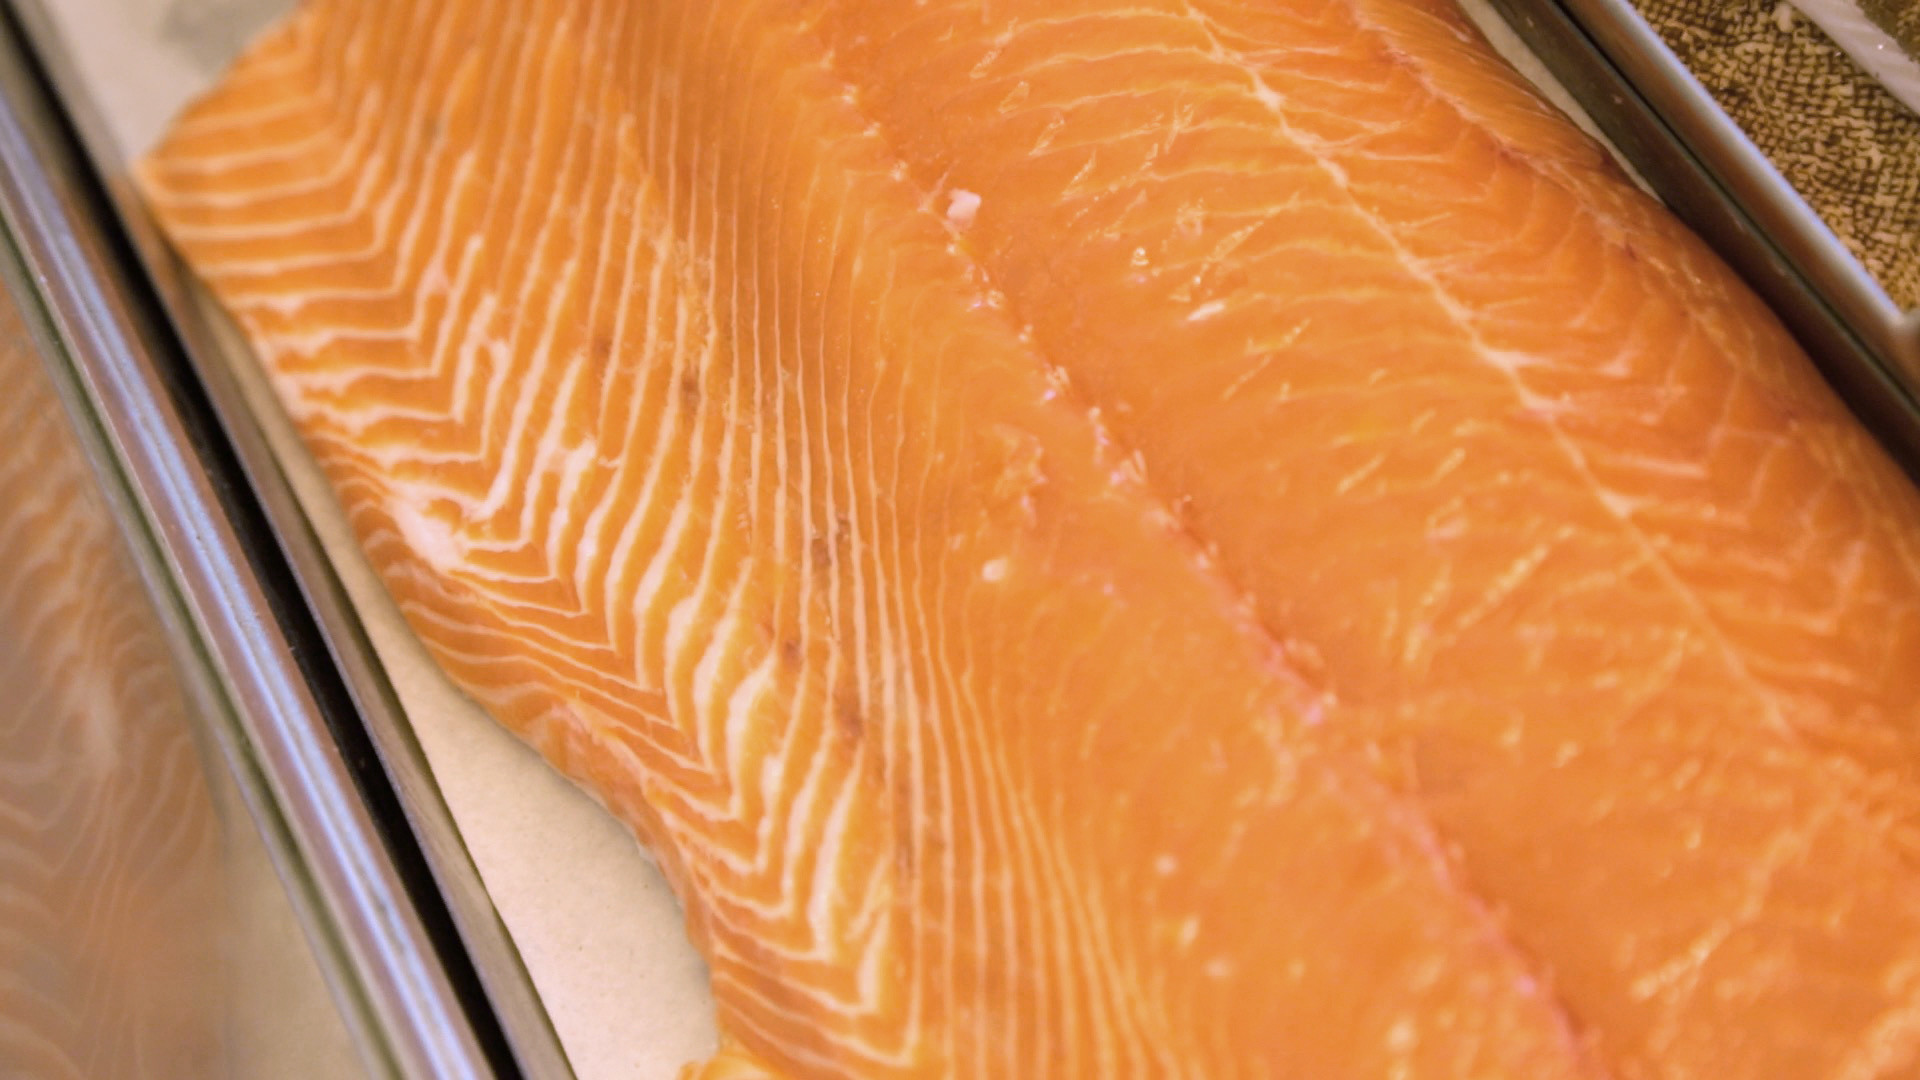 Wild king salmon is a good choice for salmon lovers.